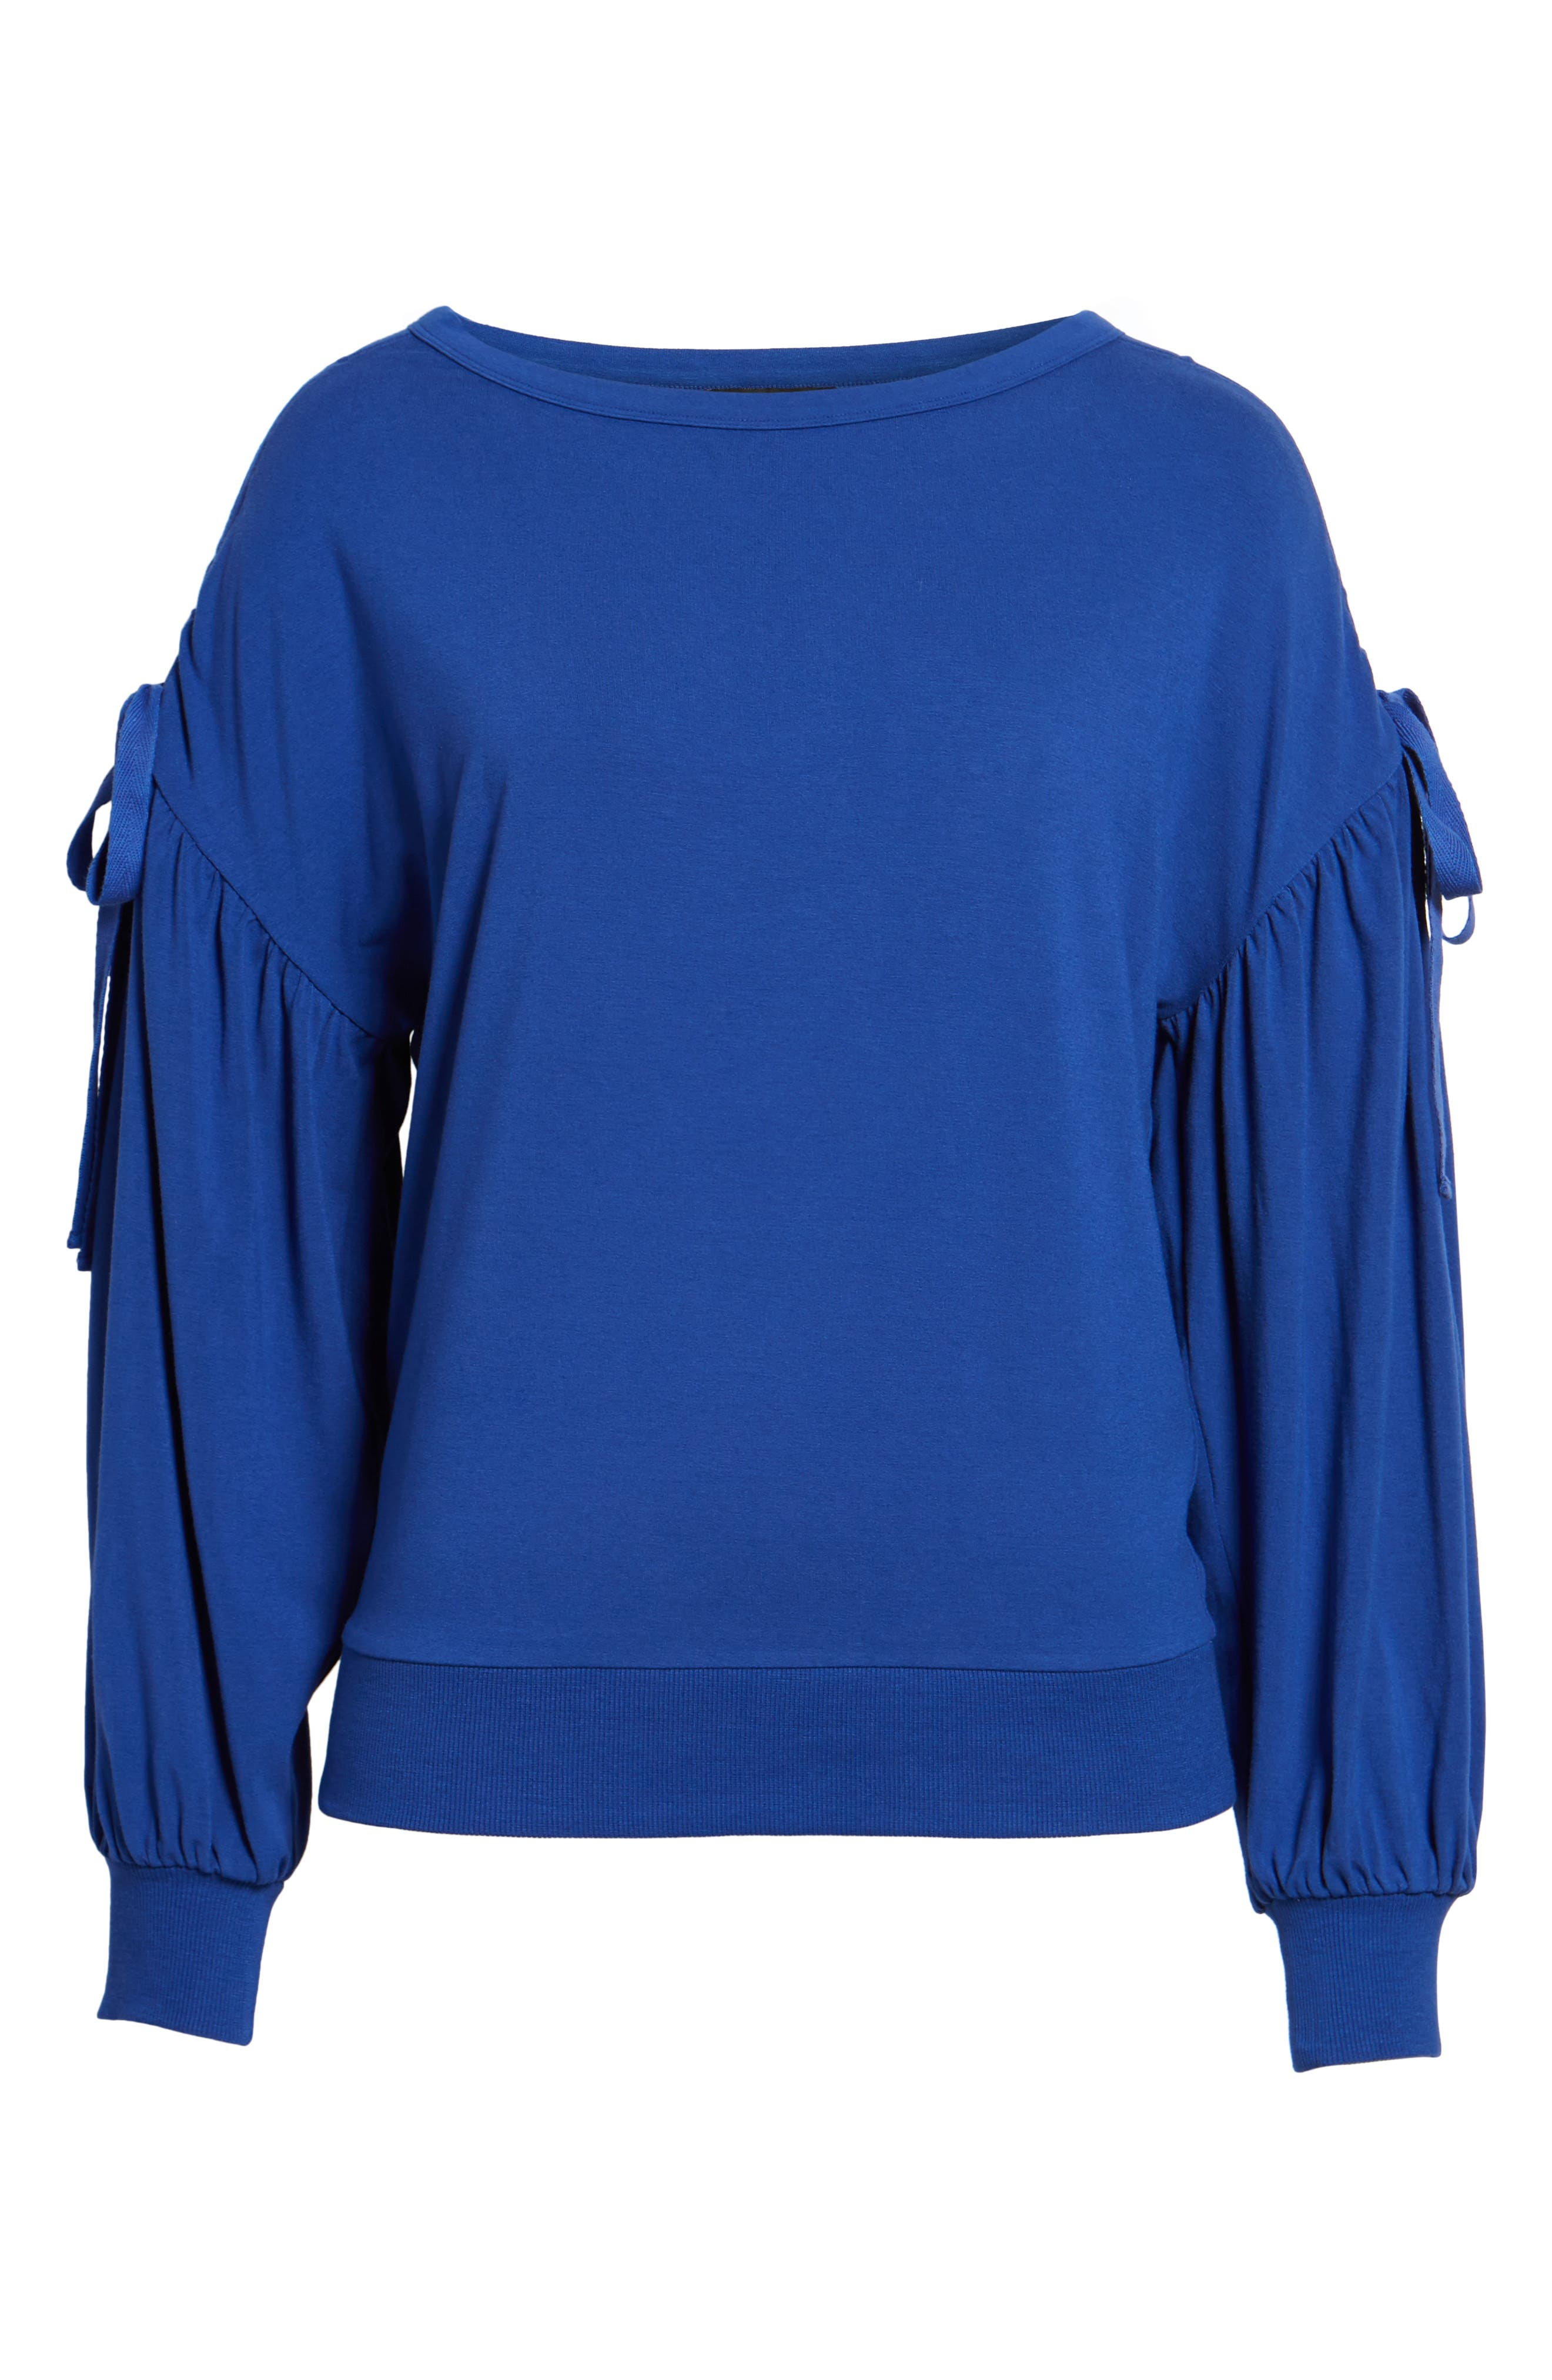 Ruched Bow Sleeve Top,                             Alternate thumbnail 23, color,